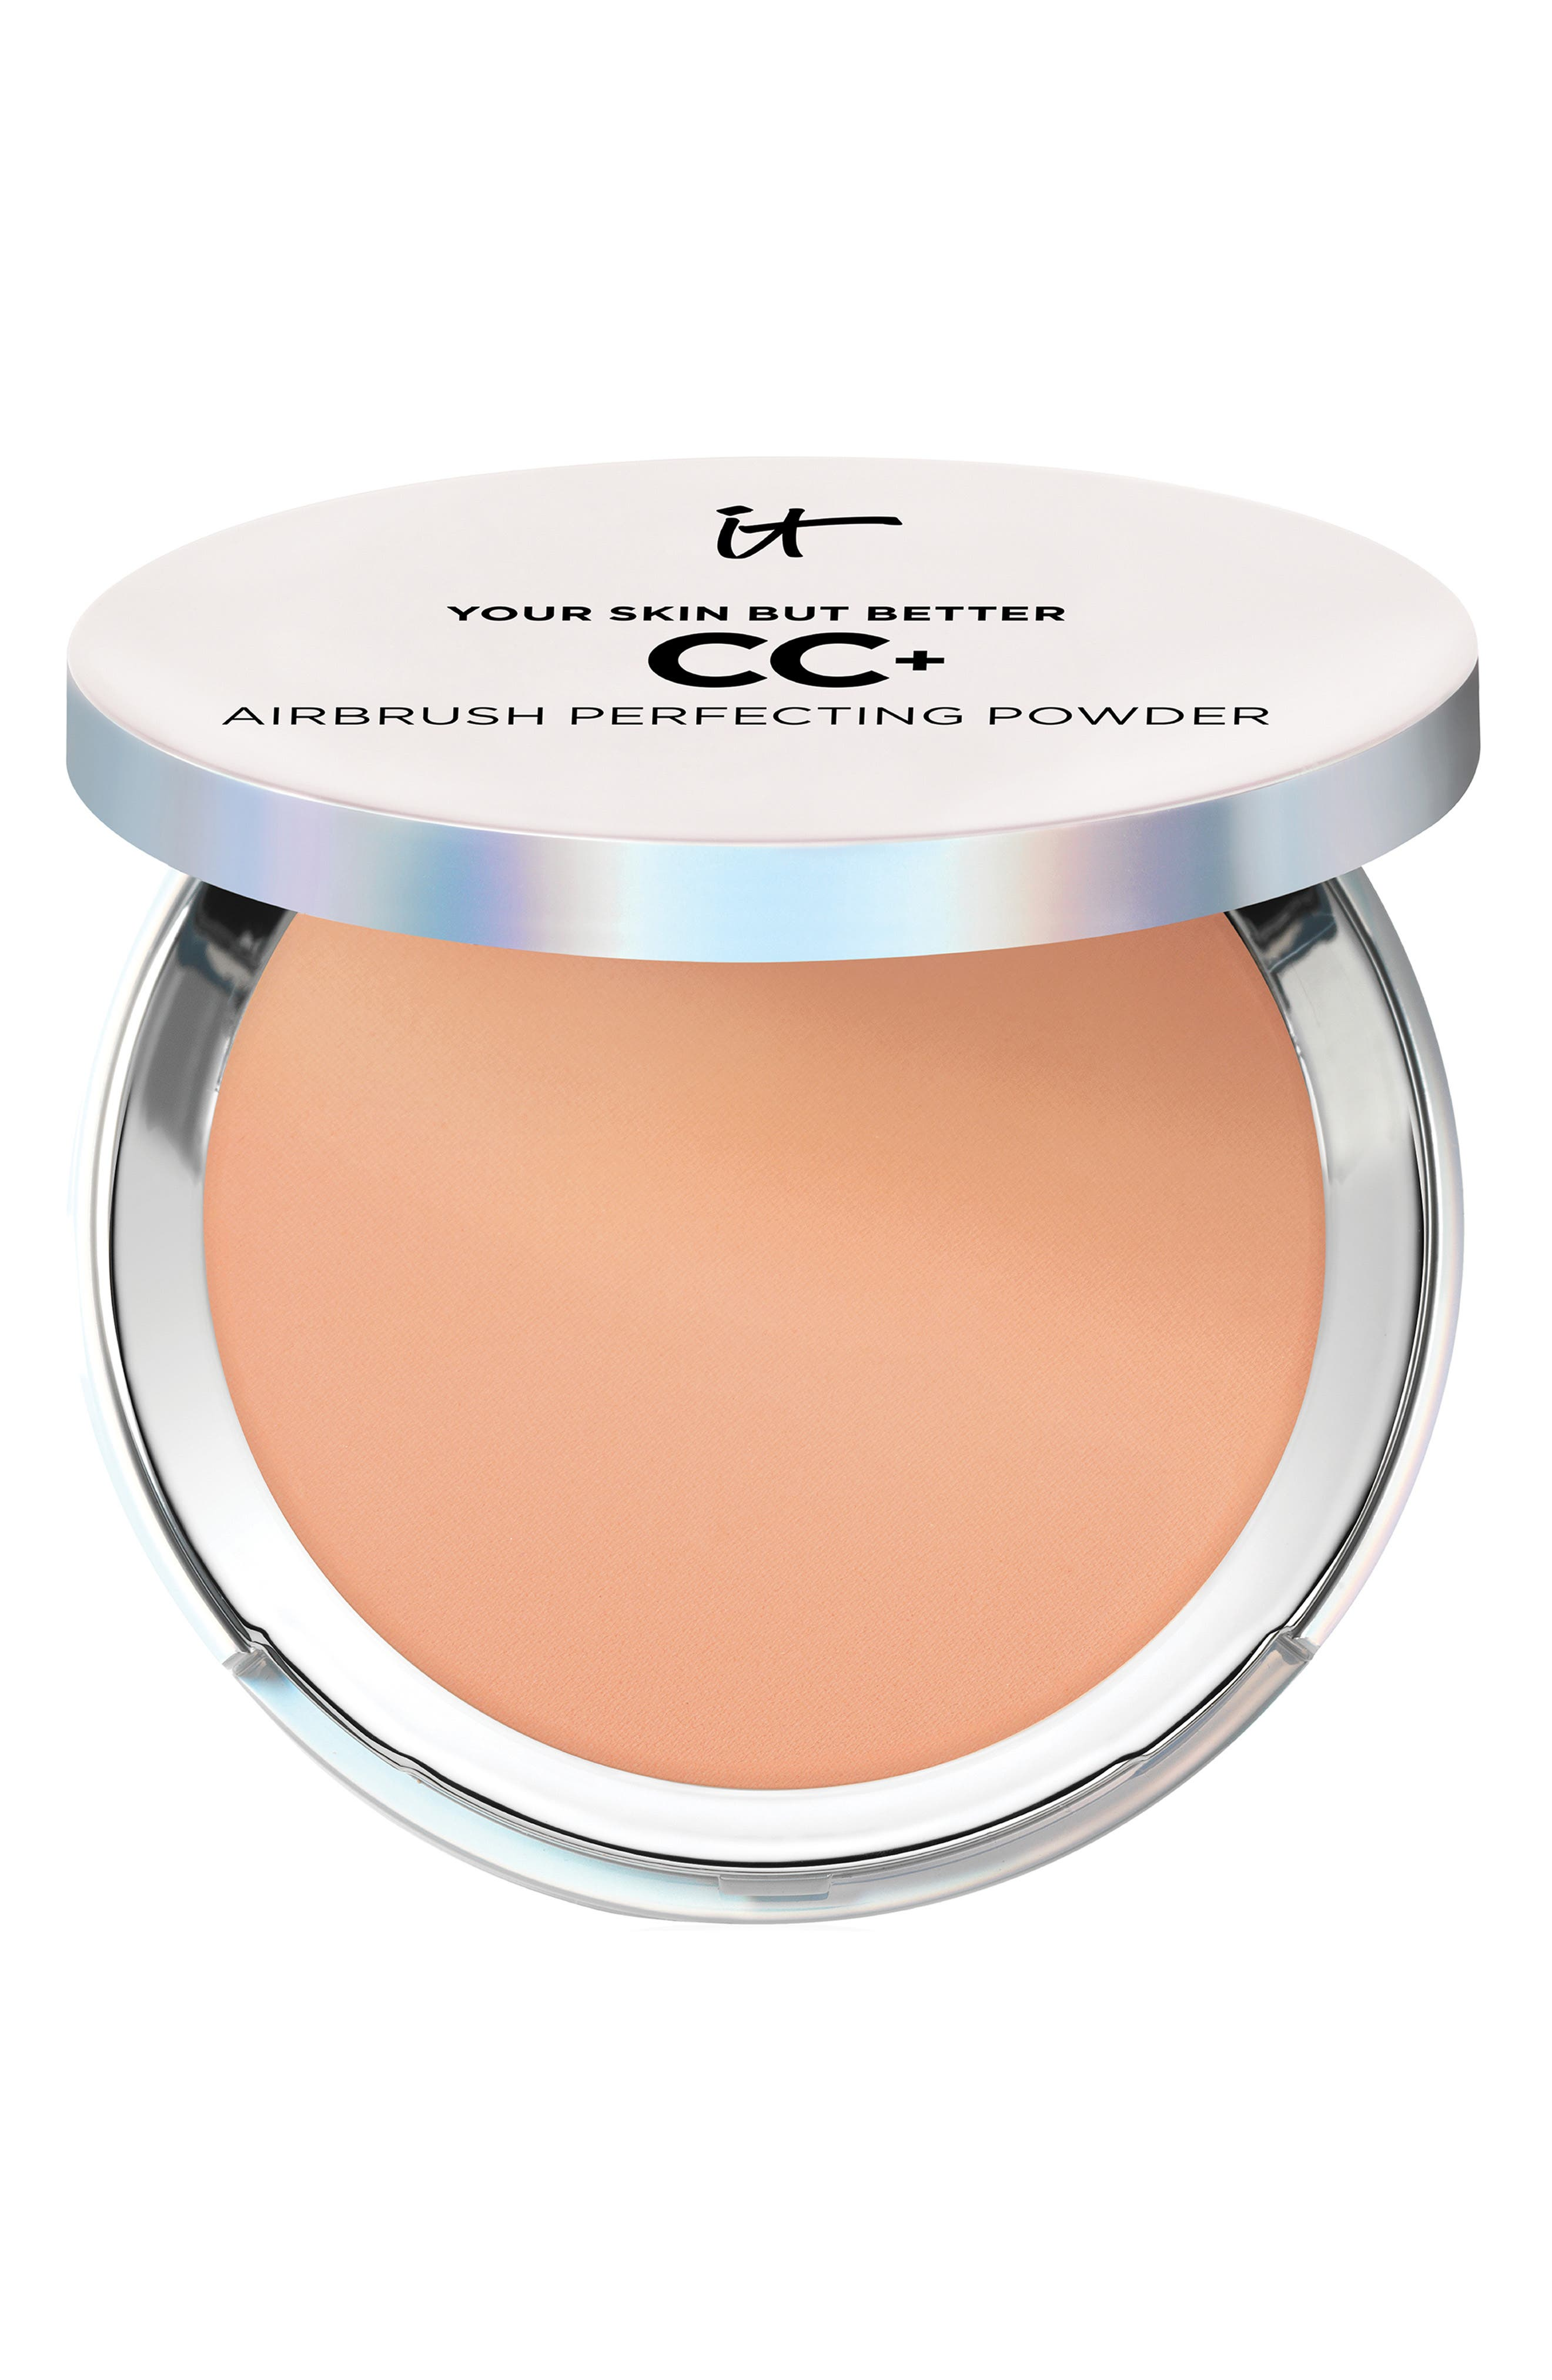 Your Skin But Better Cc+ Airbrush Perfecting Powder